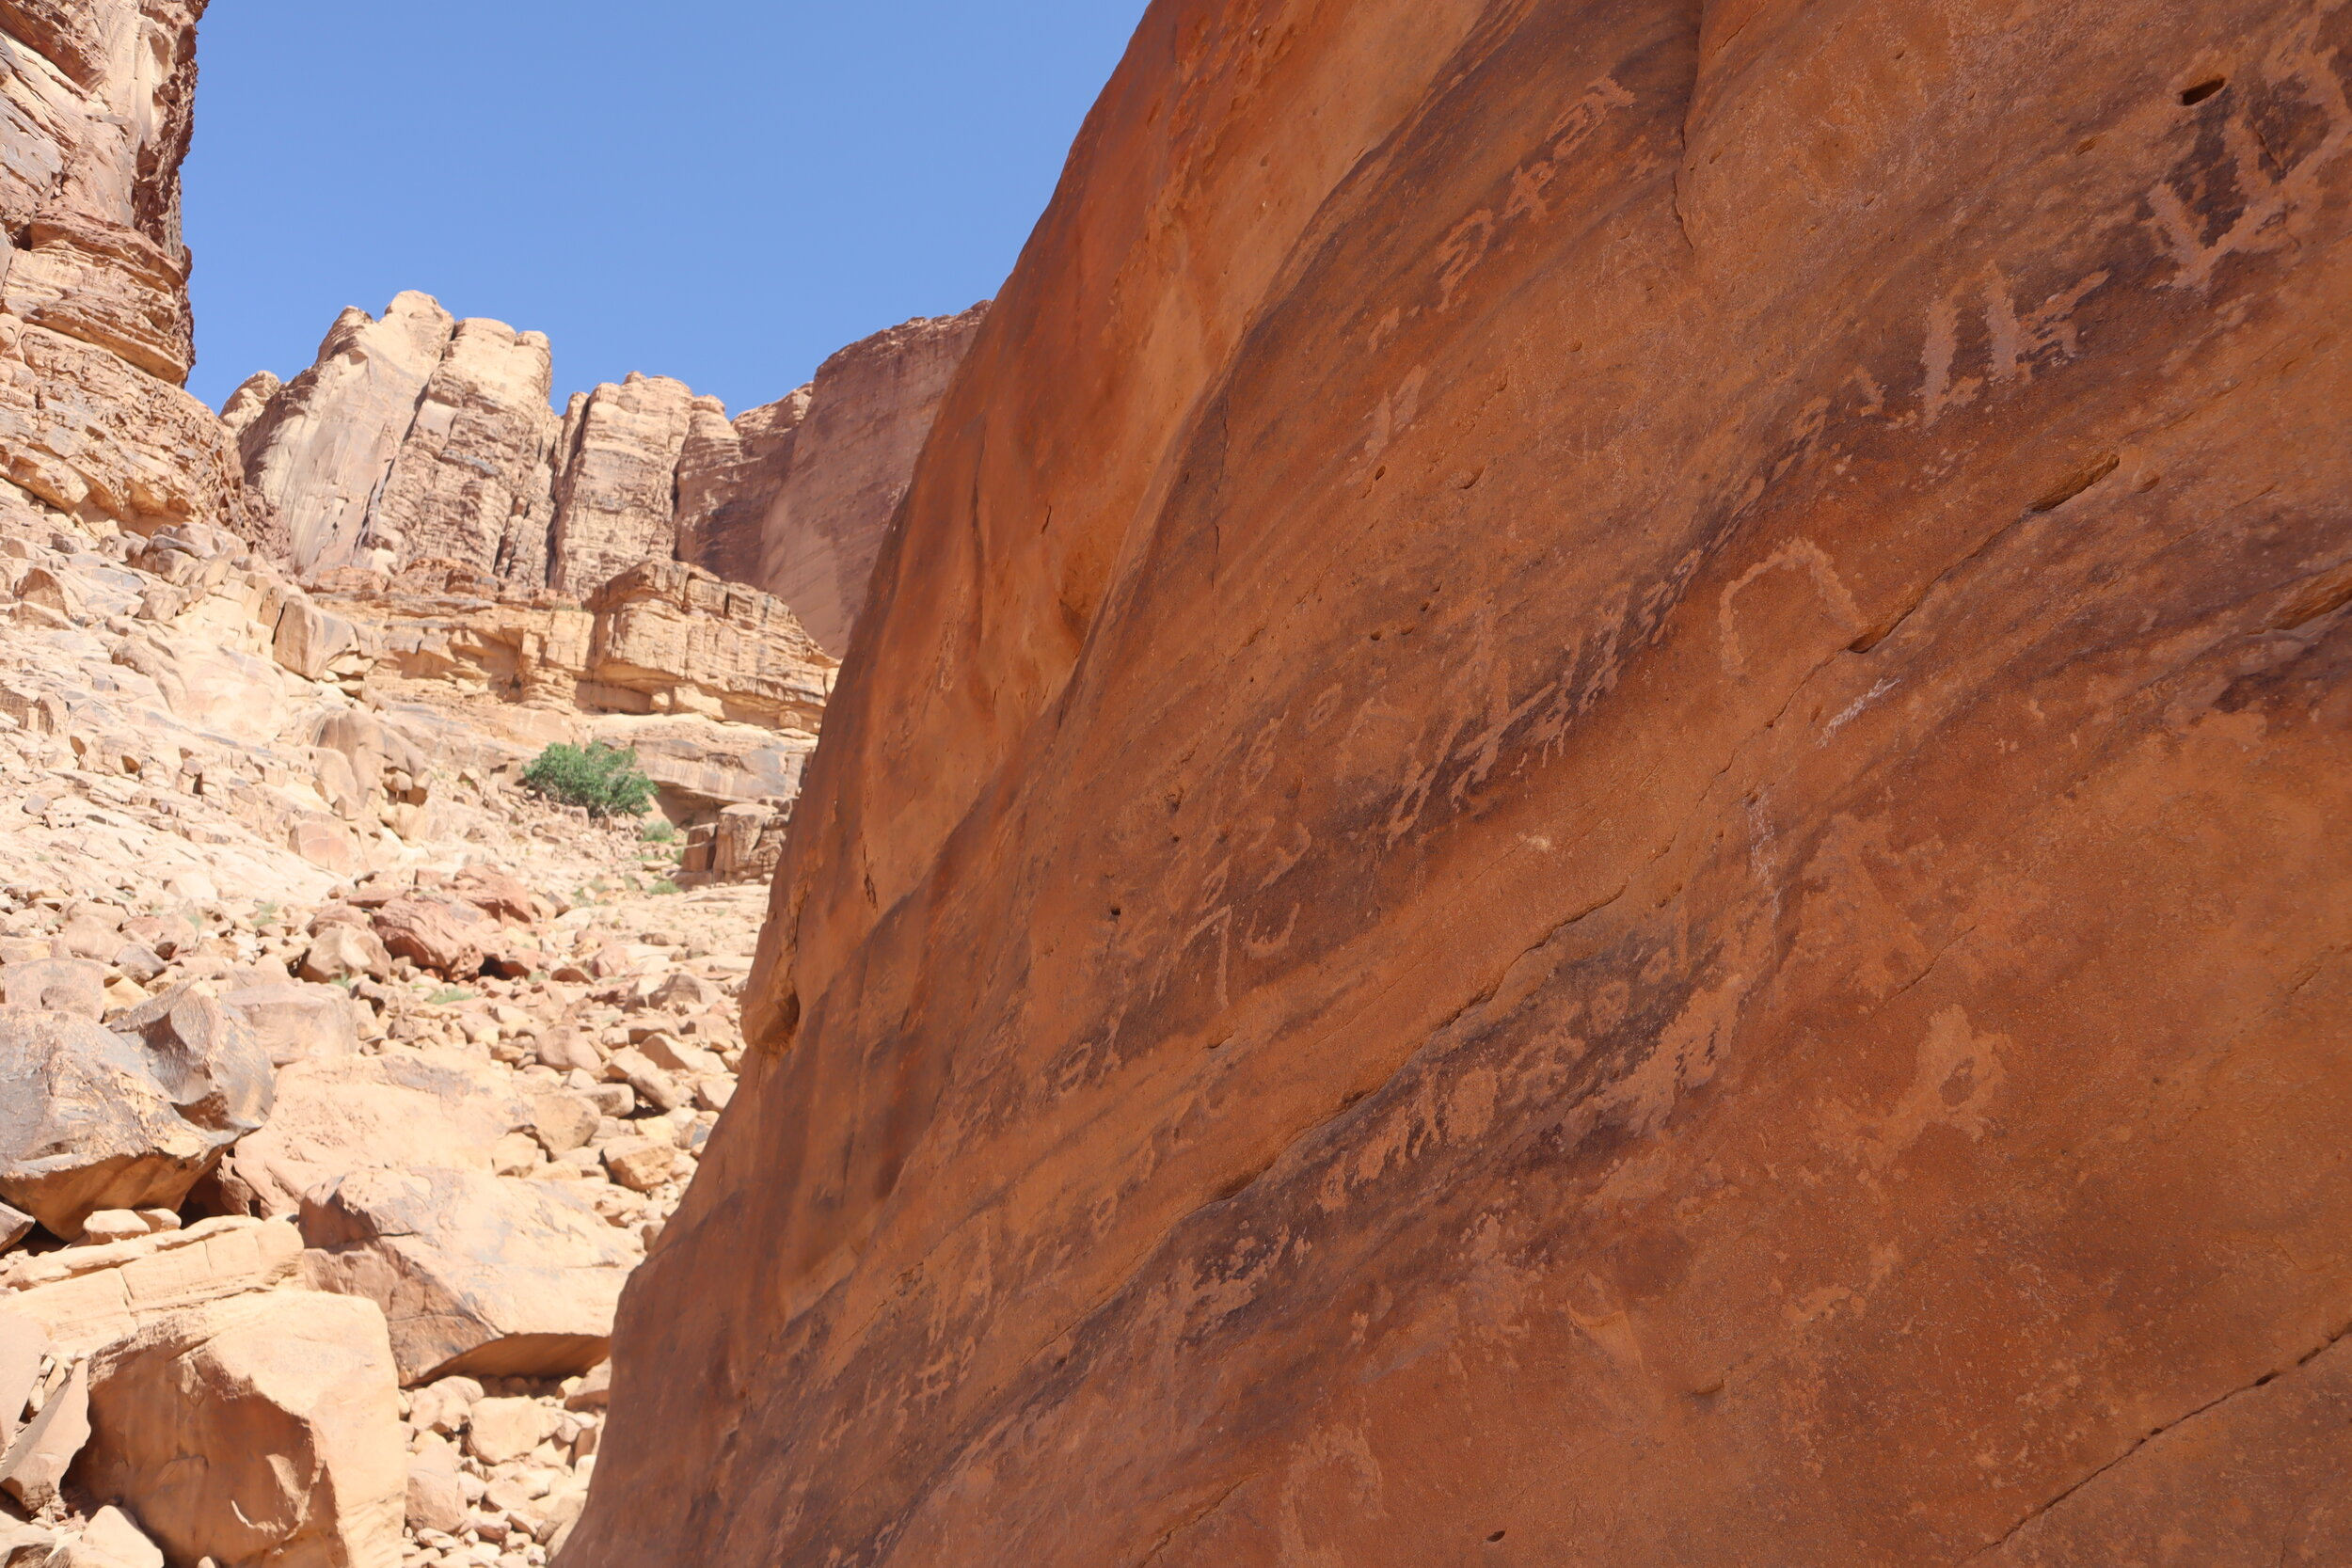 Nabatean inscriptions on the rocks